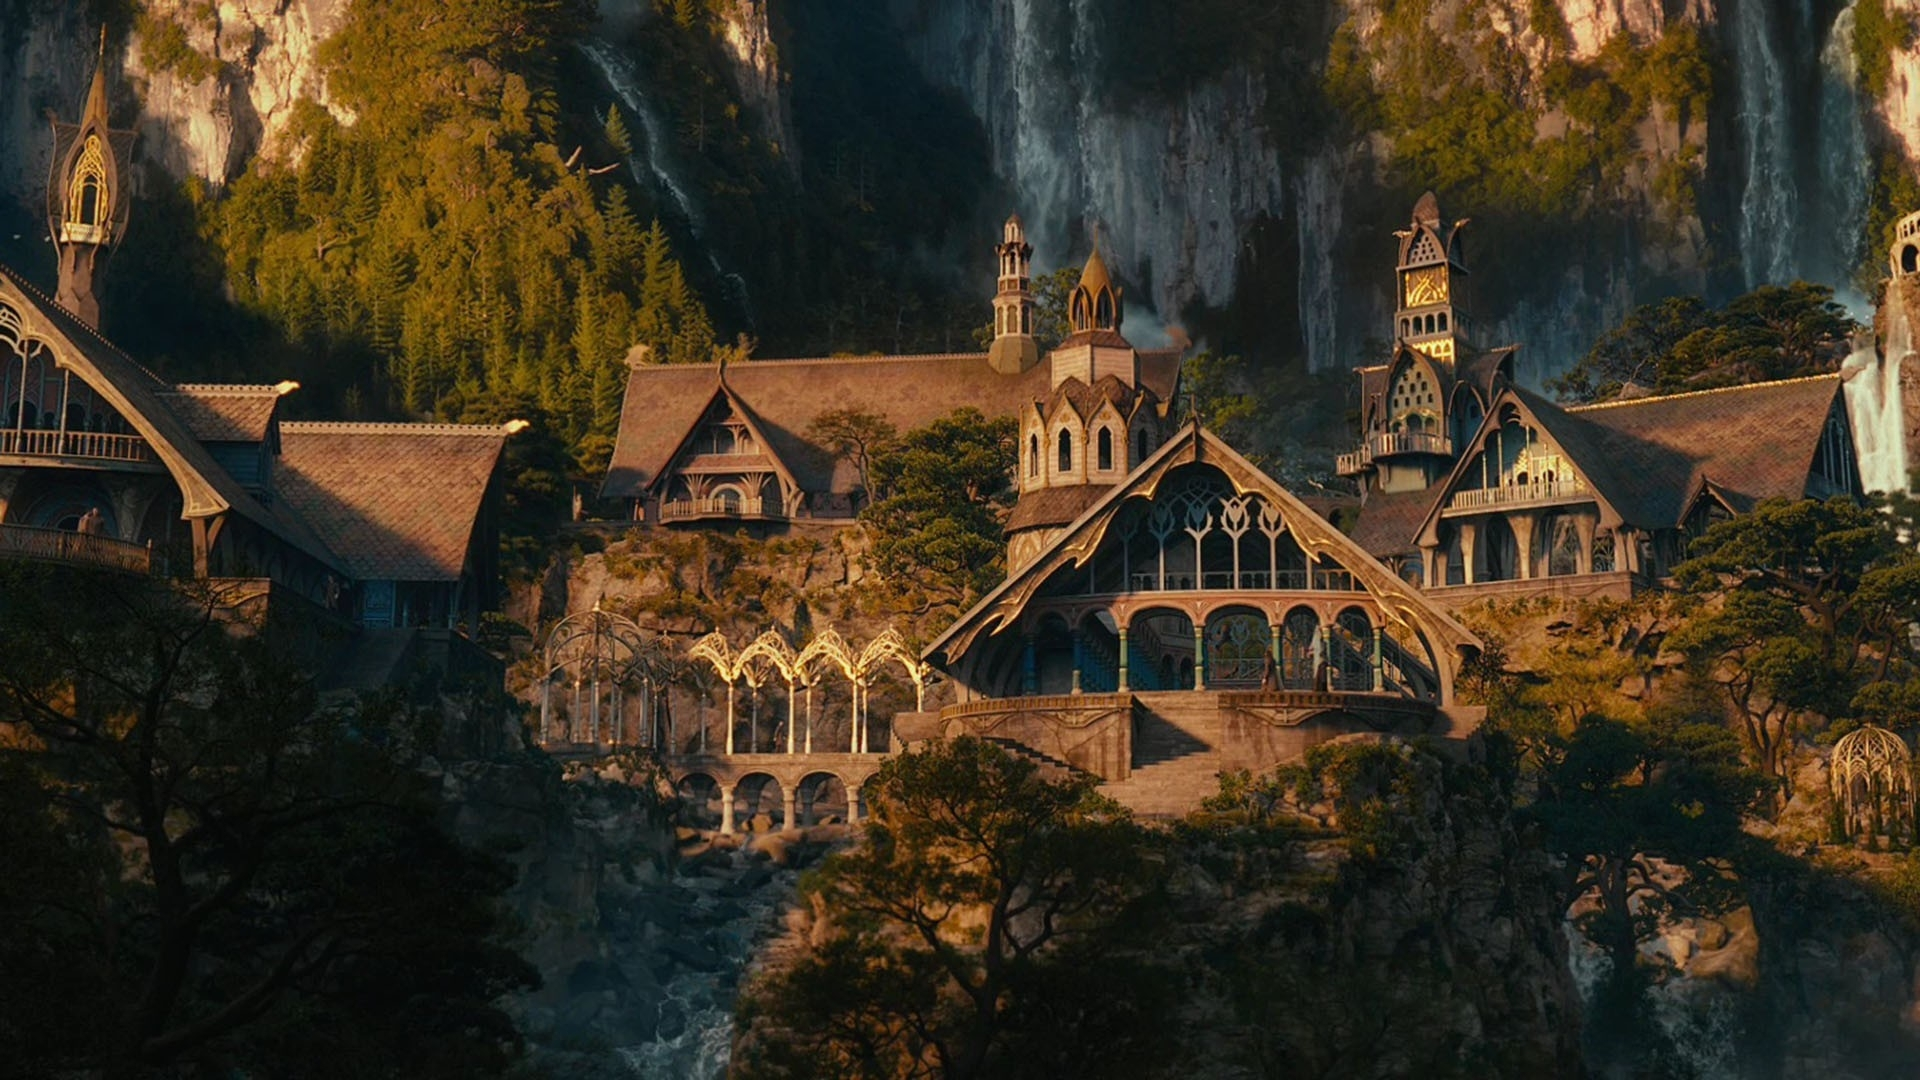 rivendell full hd wallpaper and background image | 1920x1080 | id:373348